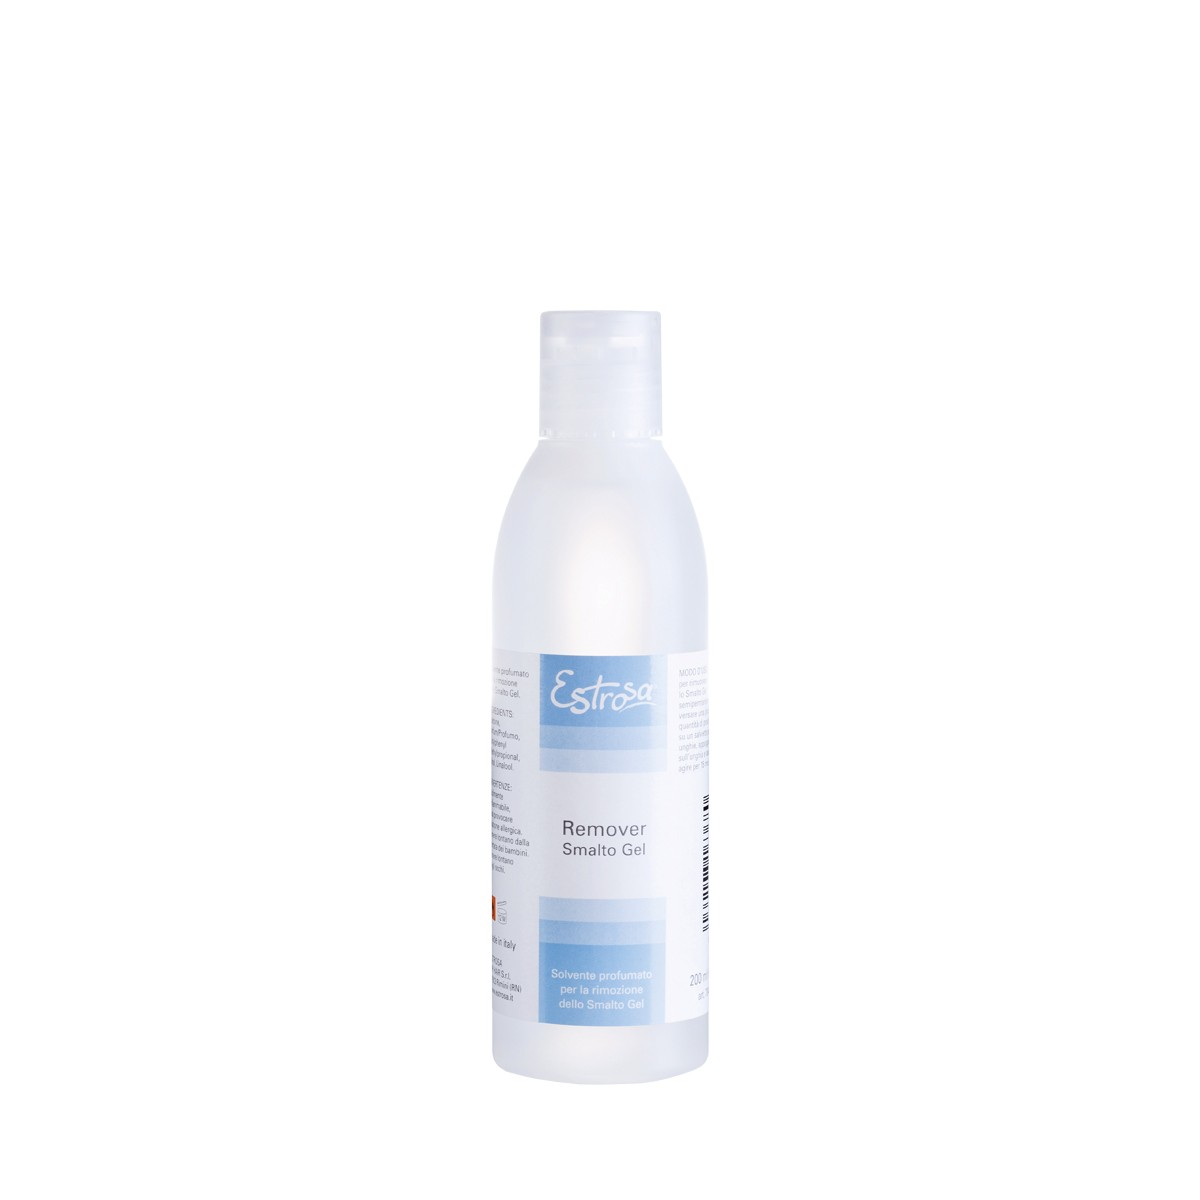 200 ml Remover Smalto Gel Estrosa